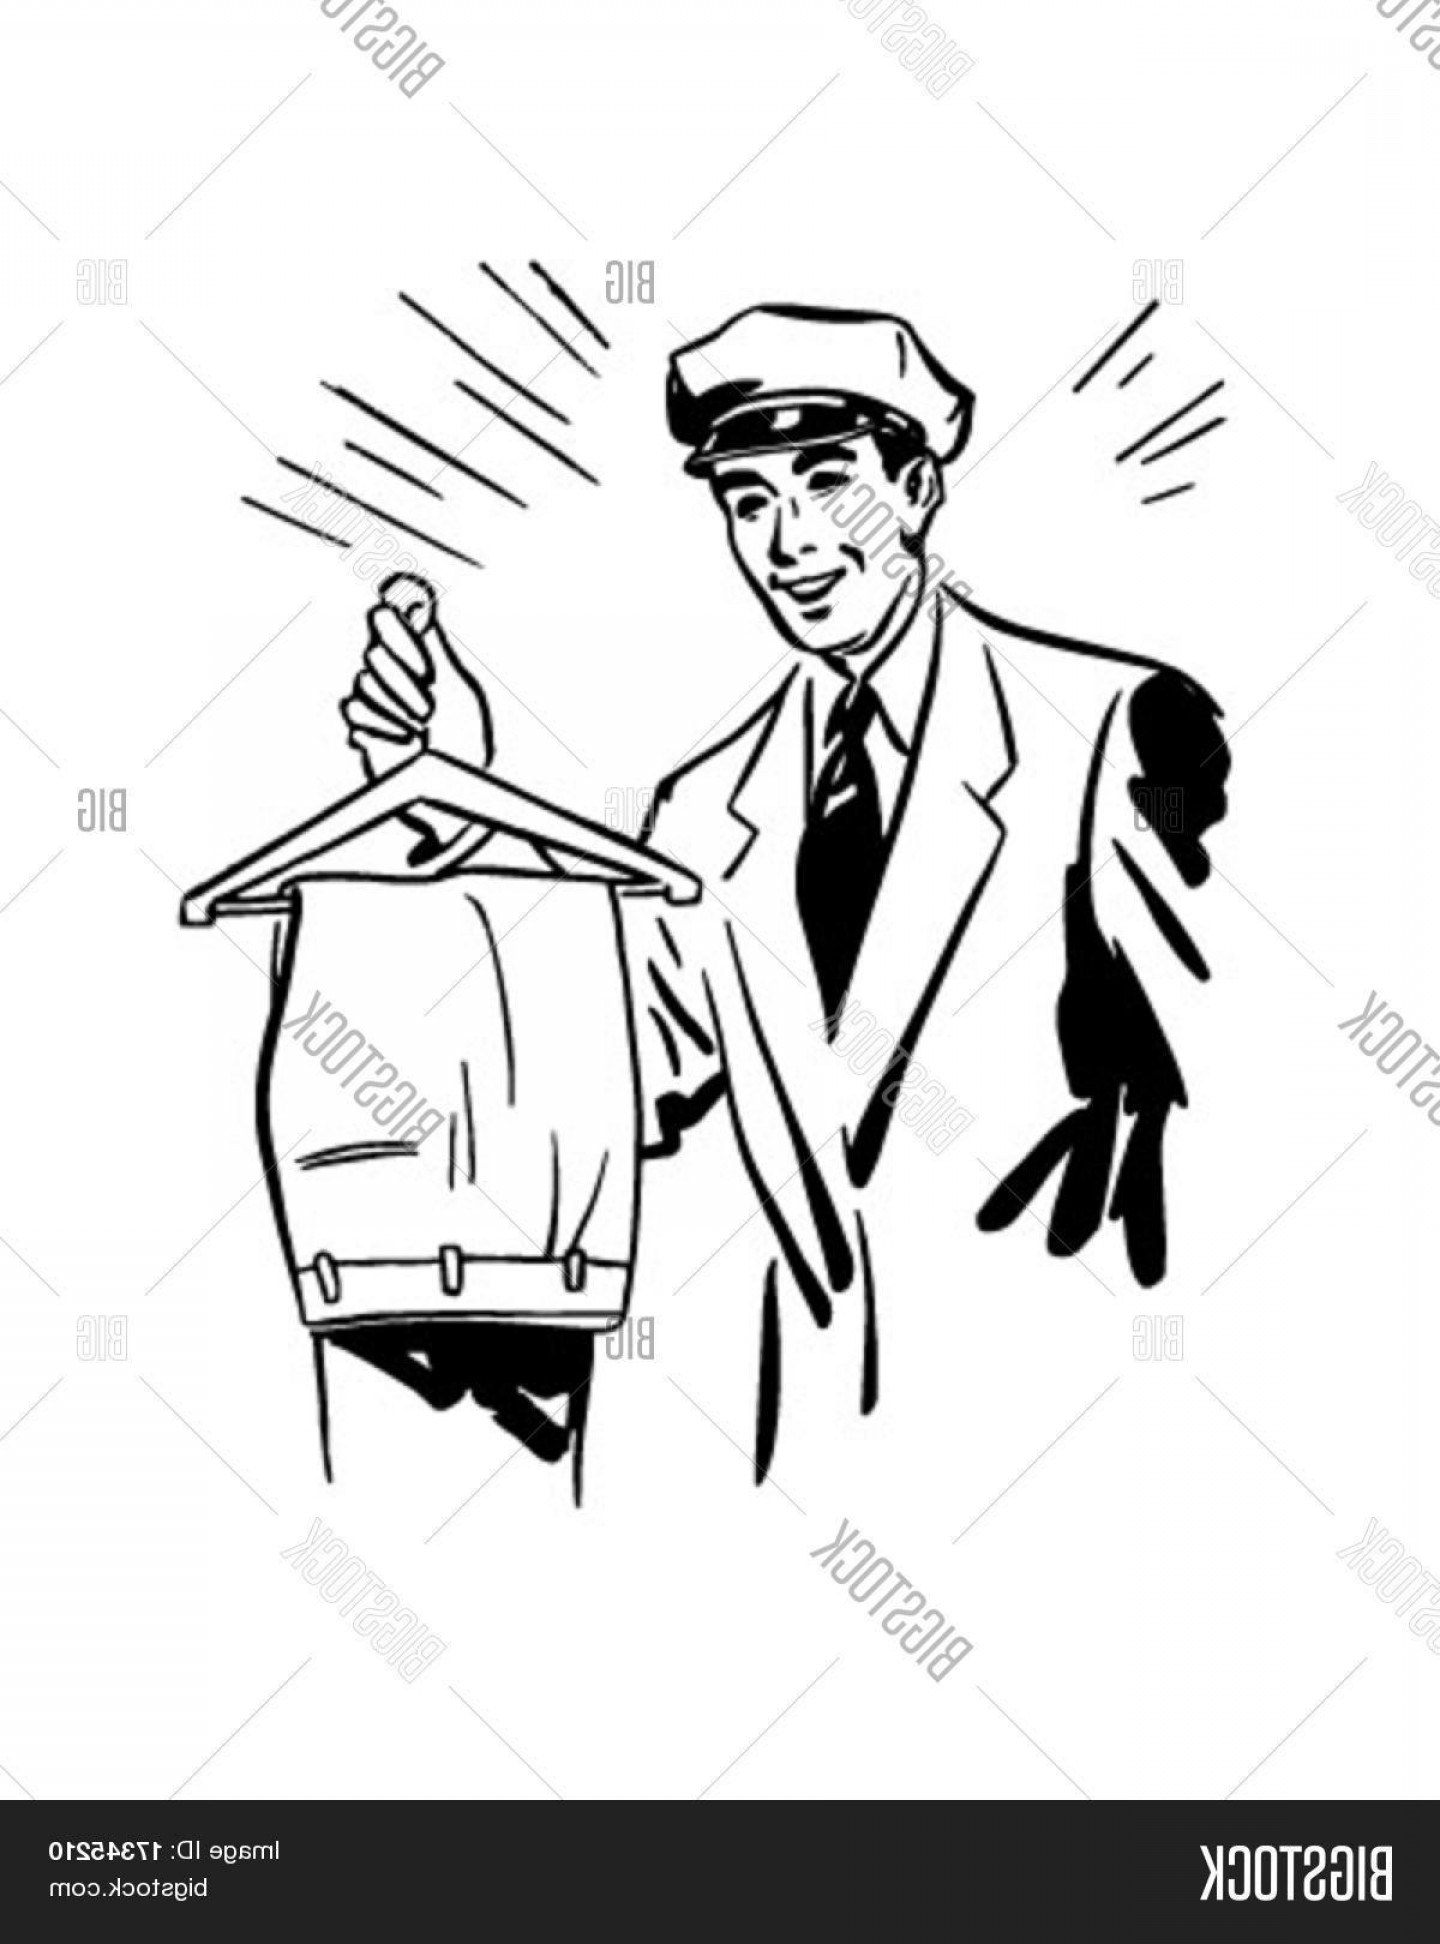 Dry Cleaning Vector: Stock Vector Man With Trousers Dry Cleaning Service